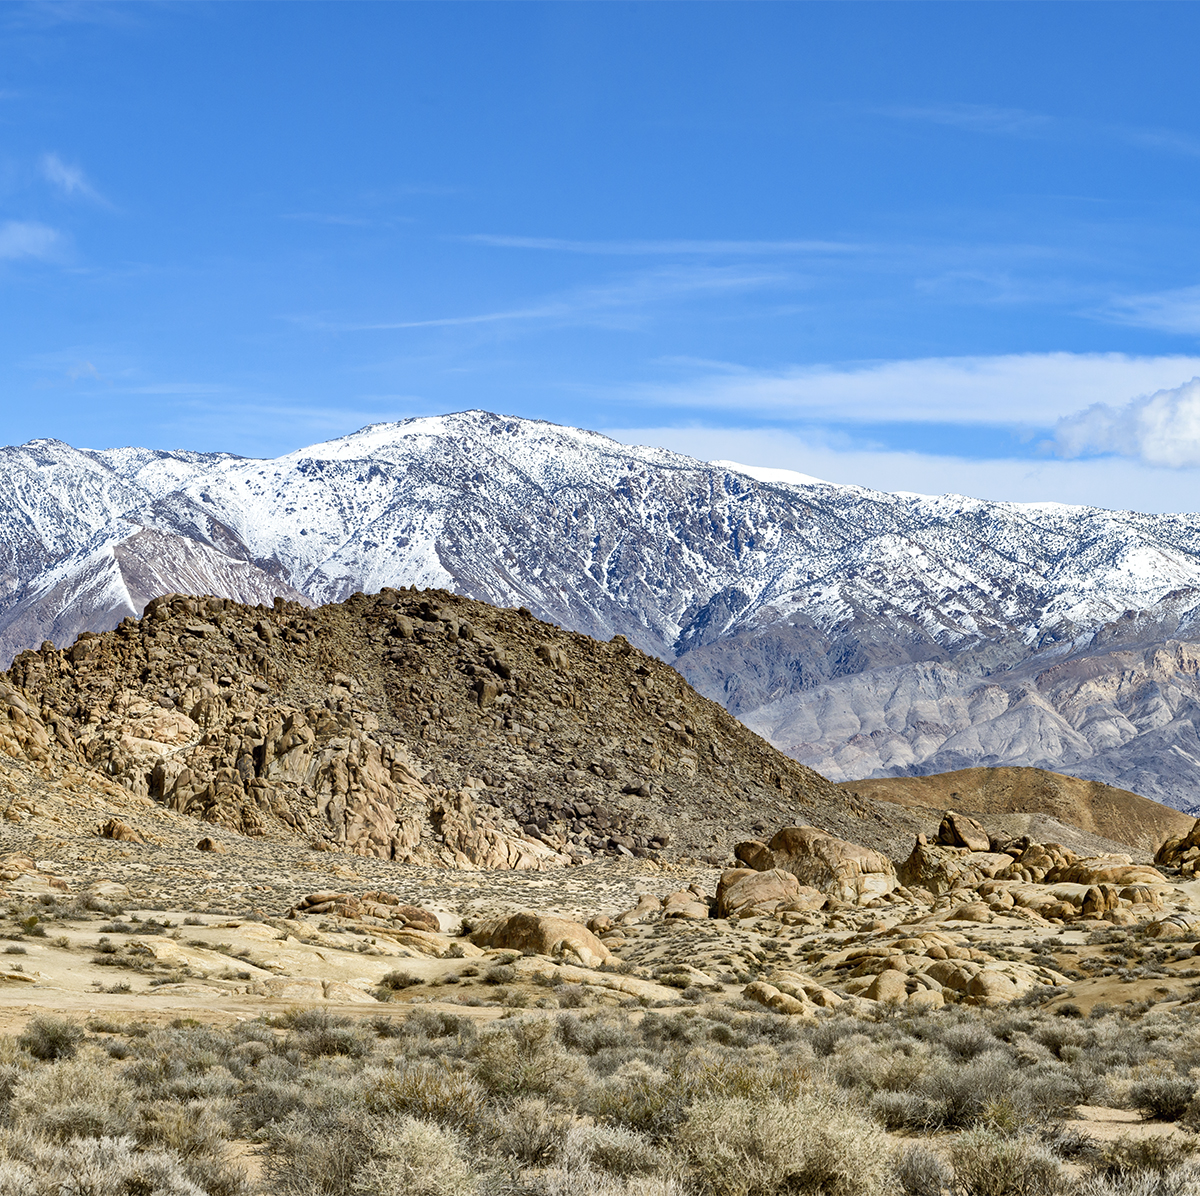 Detail from Winter Landscape Panorama Alabama Hills & Inyo MountainsImage No: 17-001892905